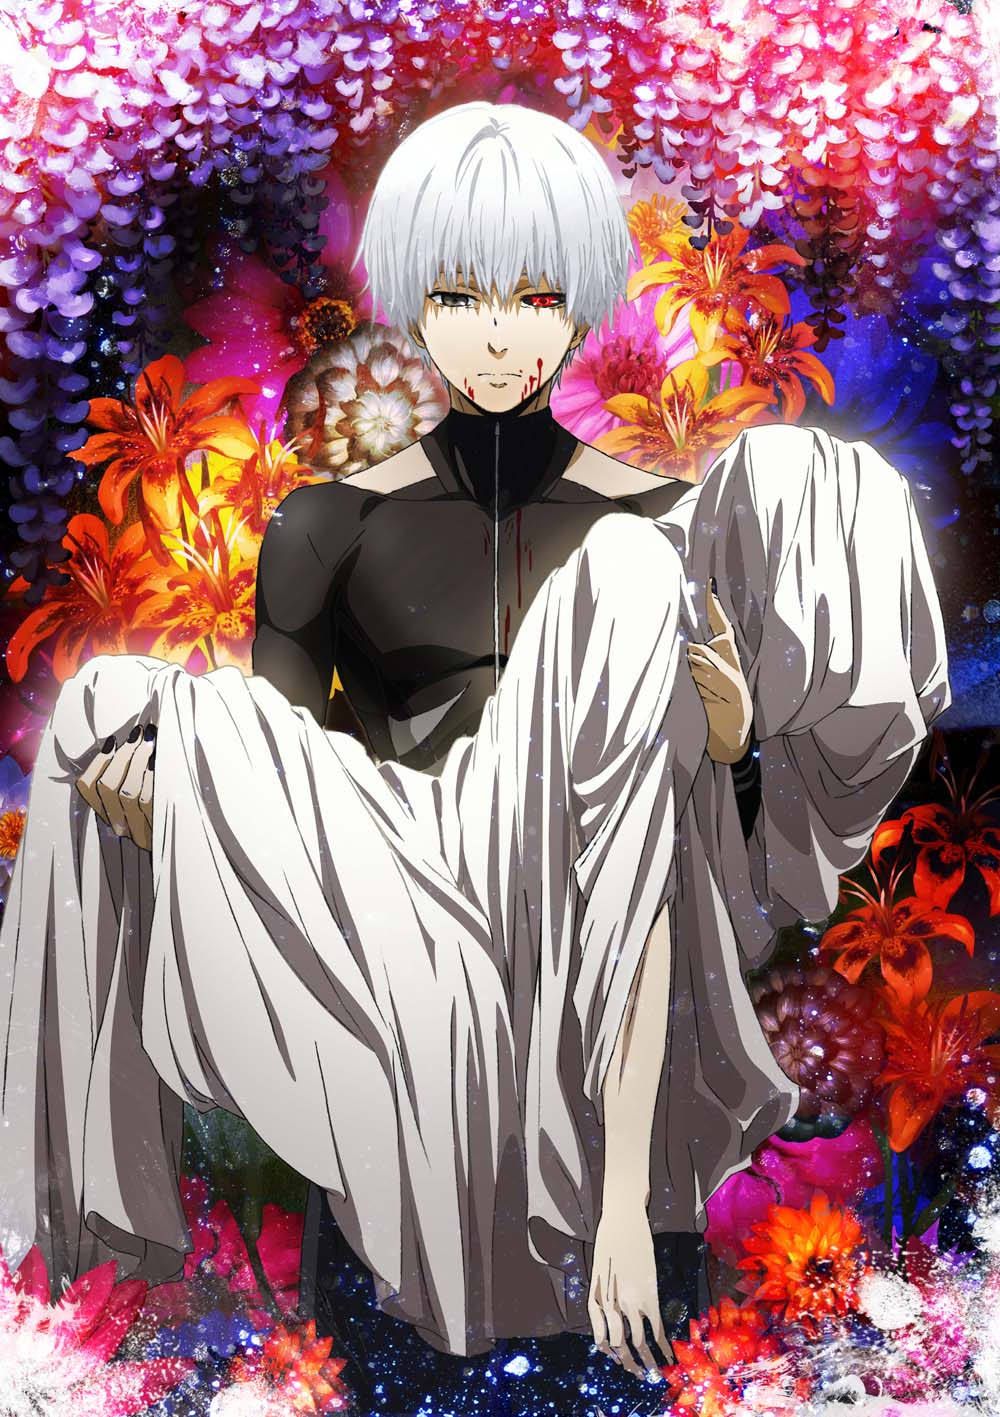 Tokyo Ghoul S2 BD Sub Indonesia Batch Episode 1-12 END